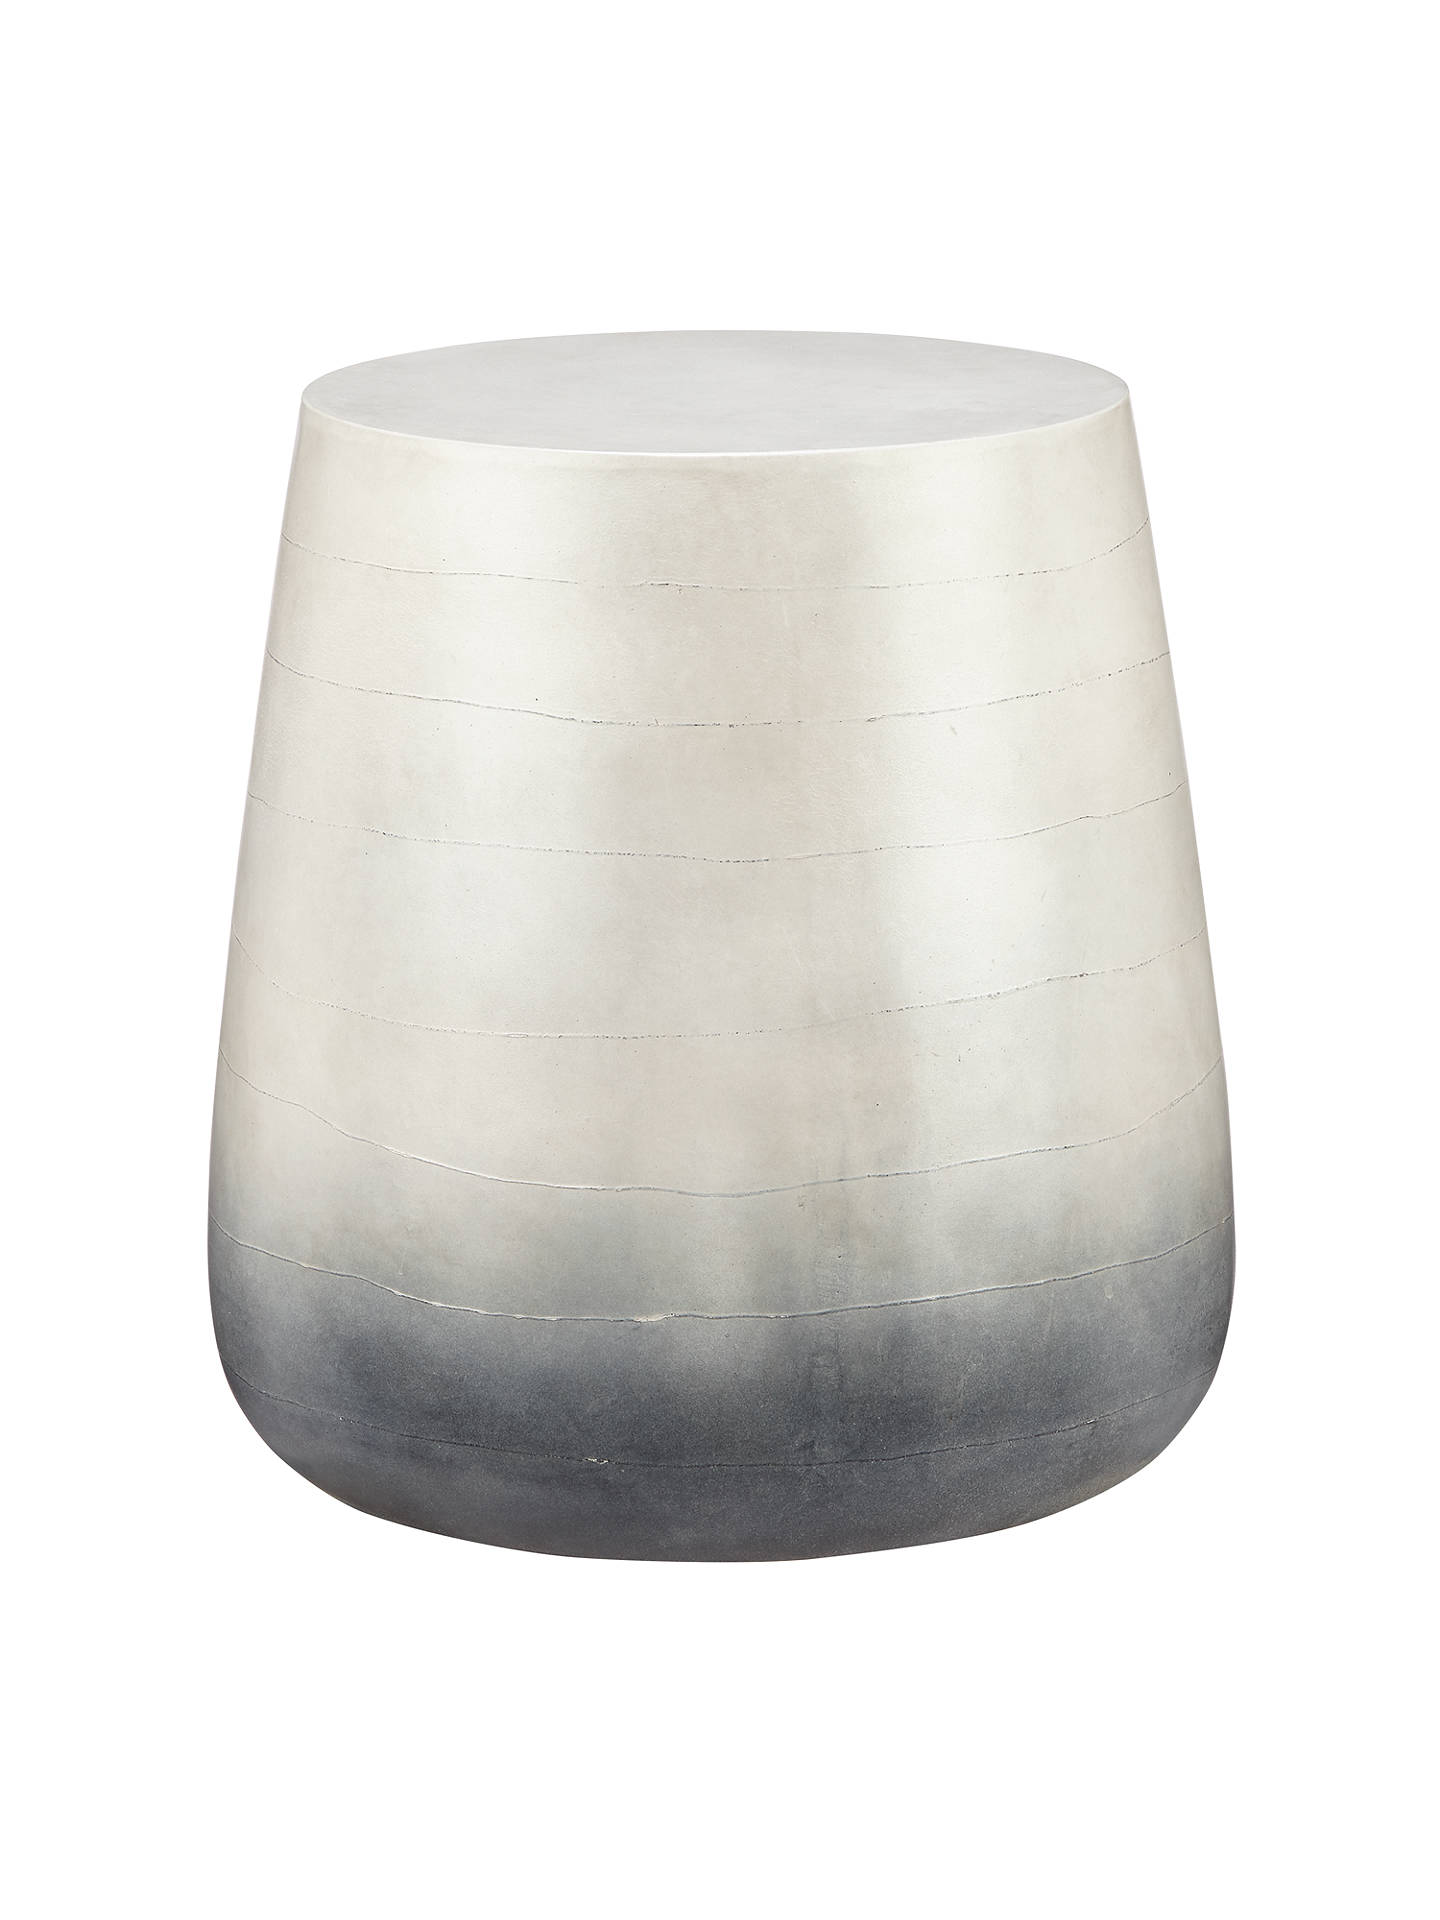 john lewis leia concrete outdoor side table partners johnlewis pier one dining room tables white and gold console sliding door wood metal round modern furniture ottawa accent